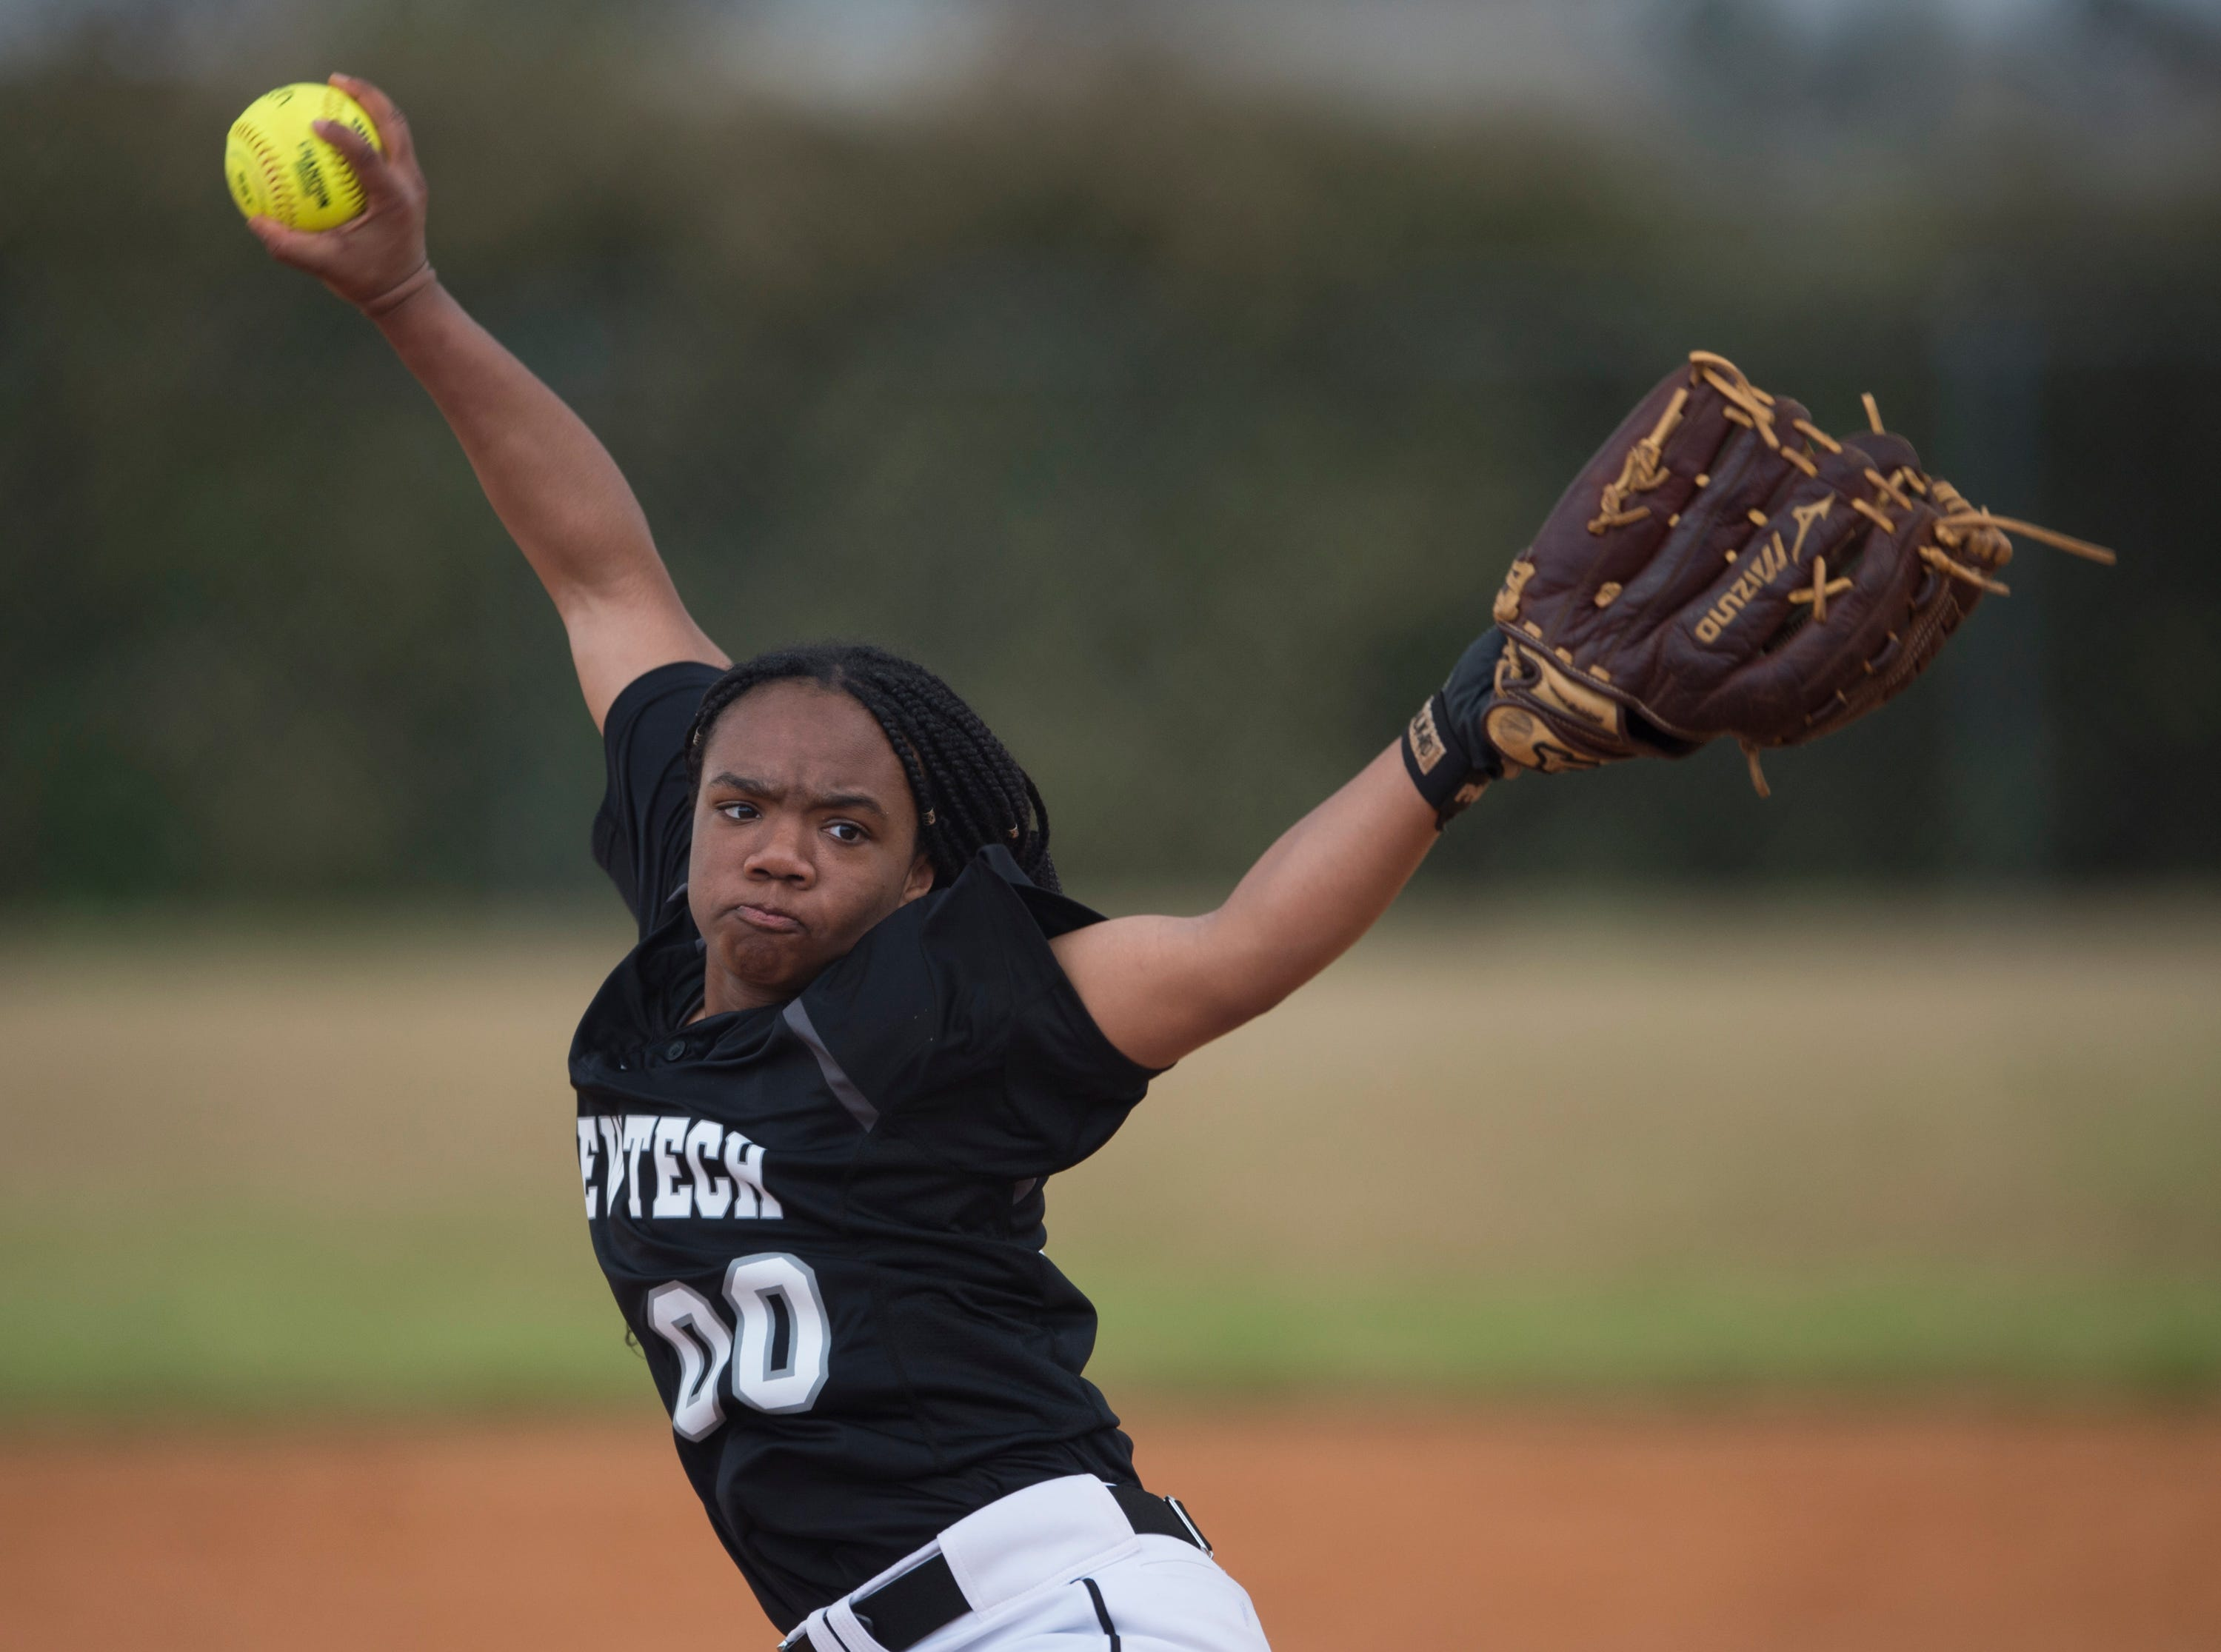 Brew Tech's Tyra Johnson (00) pitches the ball against Tallassee at Thompson Park in Montgomery, Ala., on Thursday, March 14, 2019. Tallassee defeated Brew Tech 7-0.